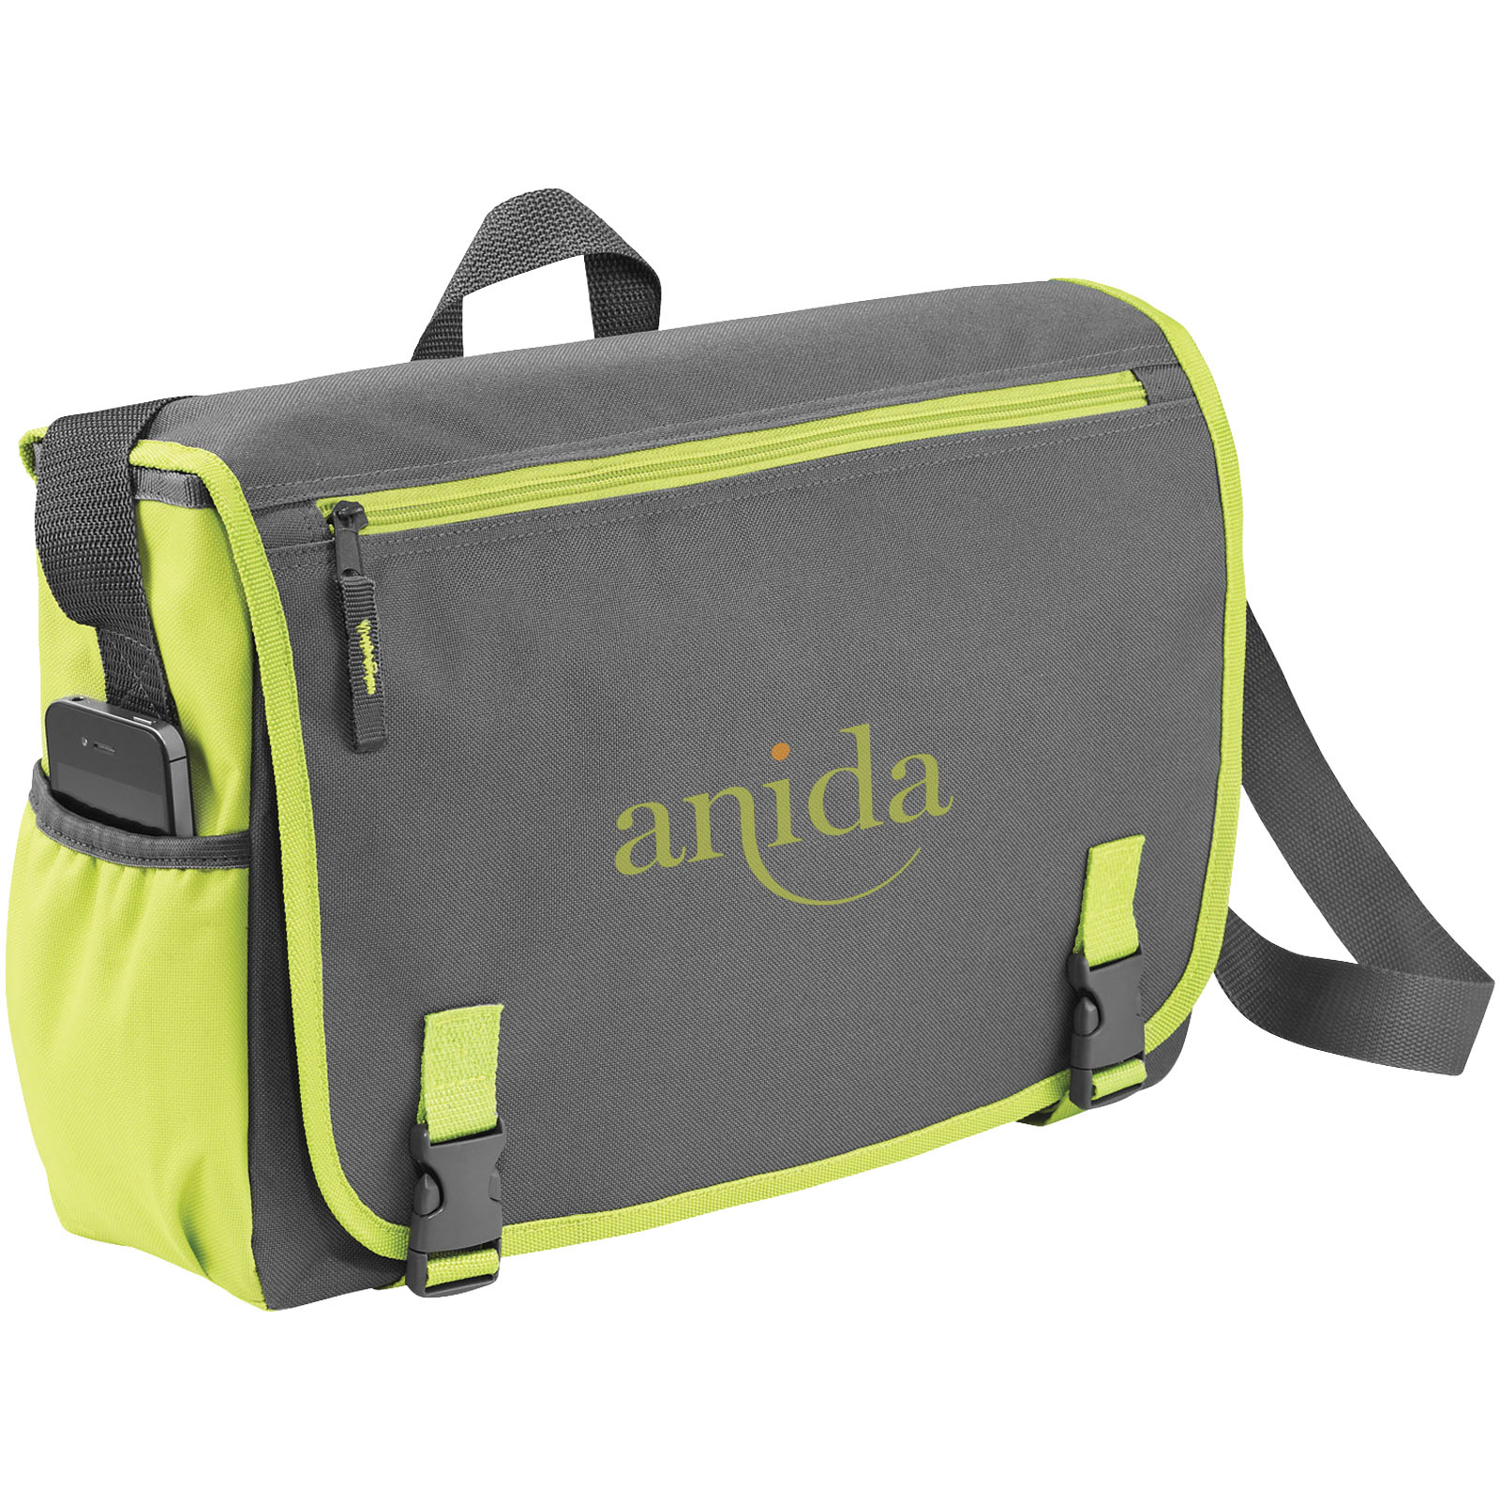 "Punch 15.6"" Laptop Messenger Bag"